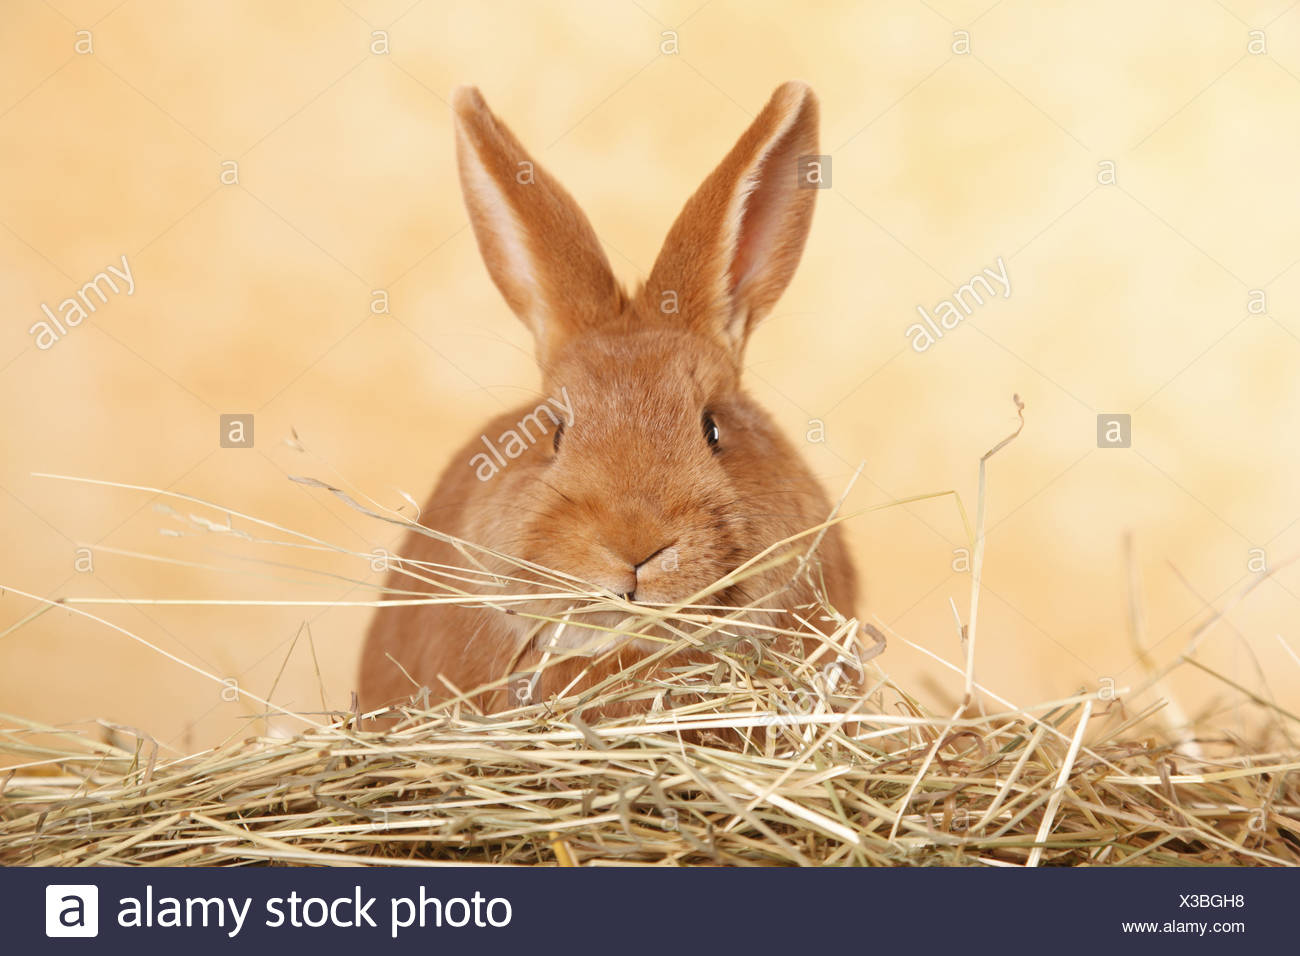 Neuseeländer / rabbit Stock Photo